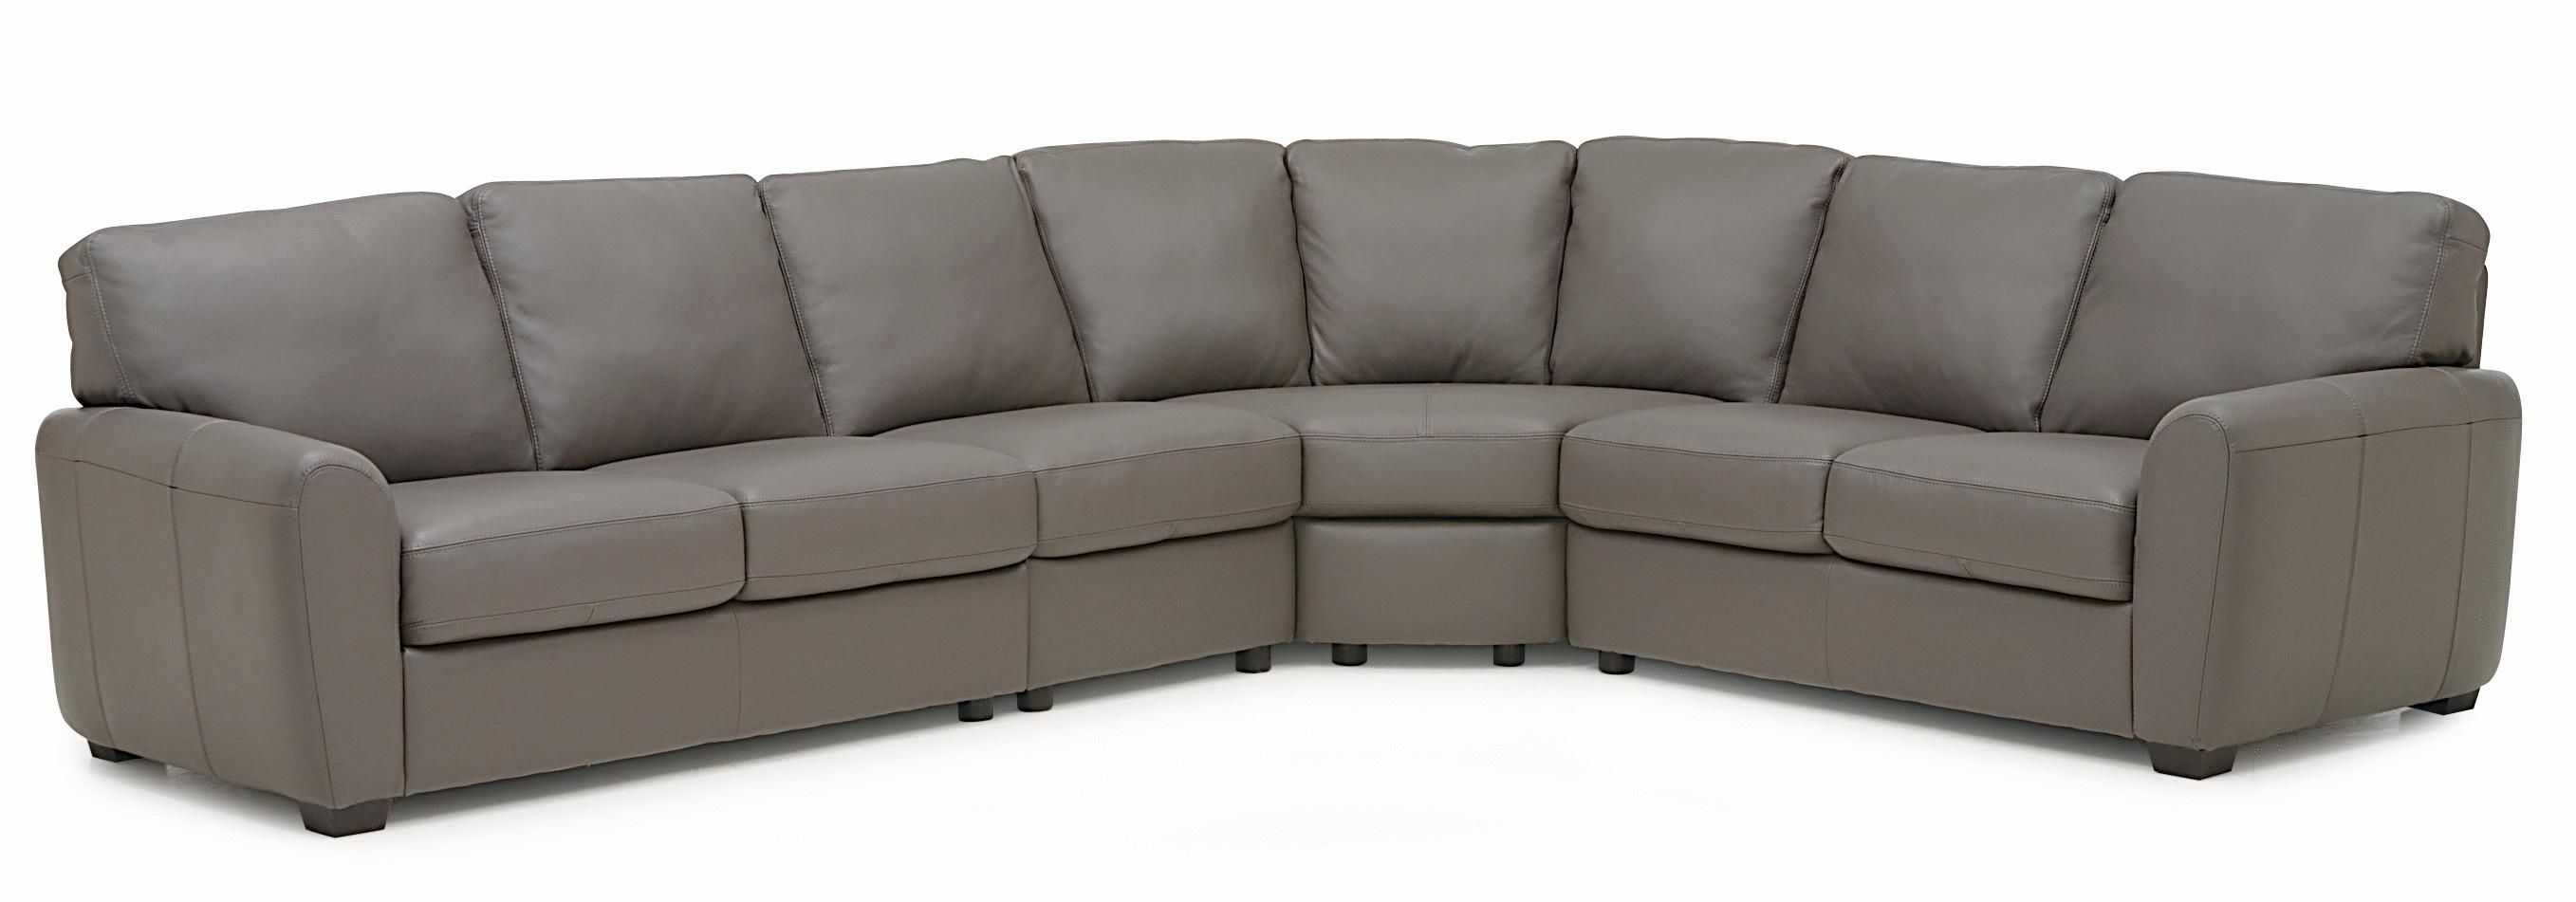 Connecticut 3 Piece Sectional Sofa by Palliser